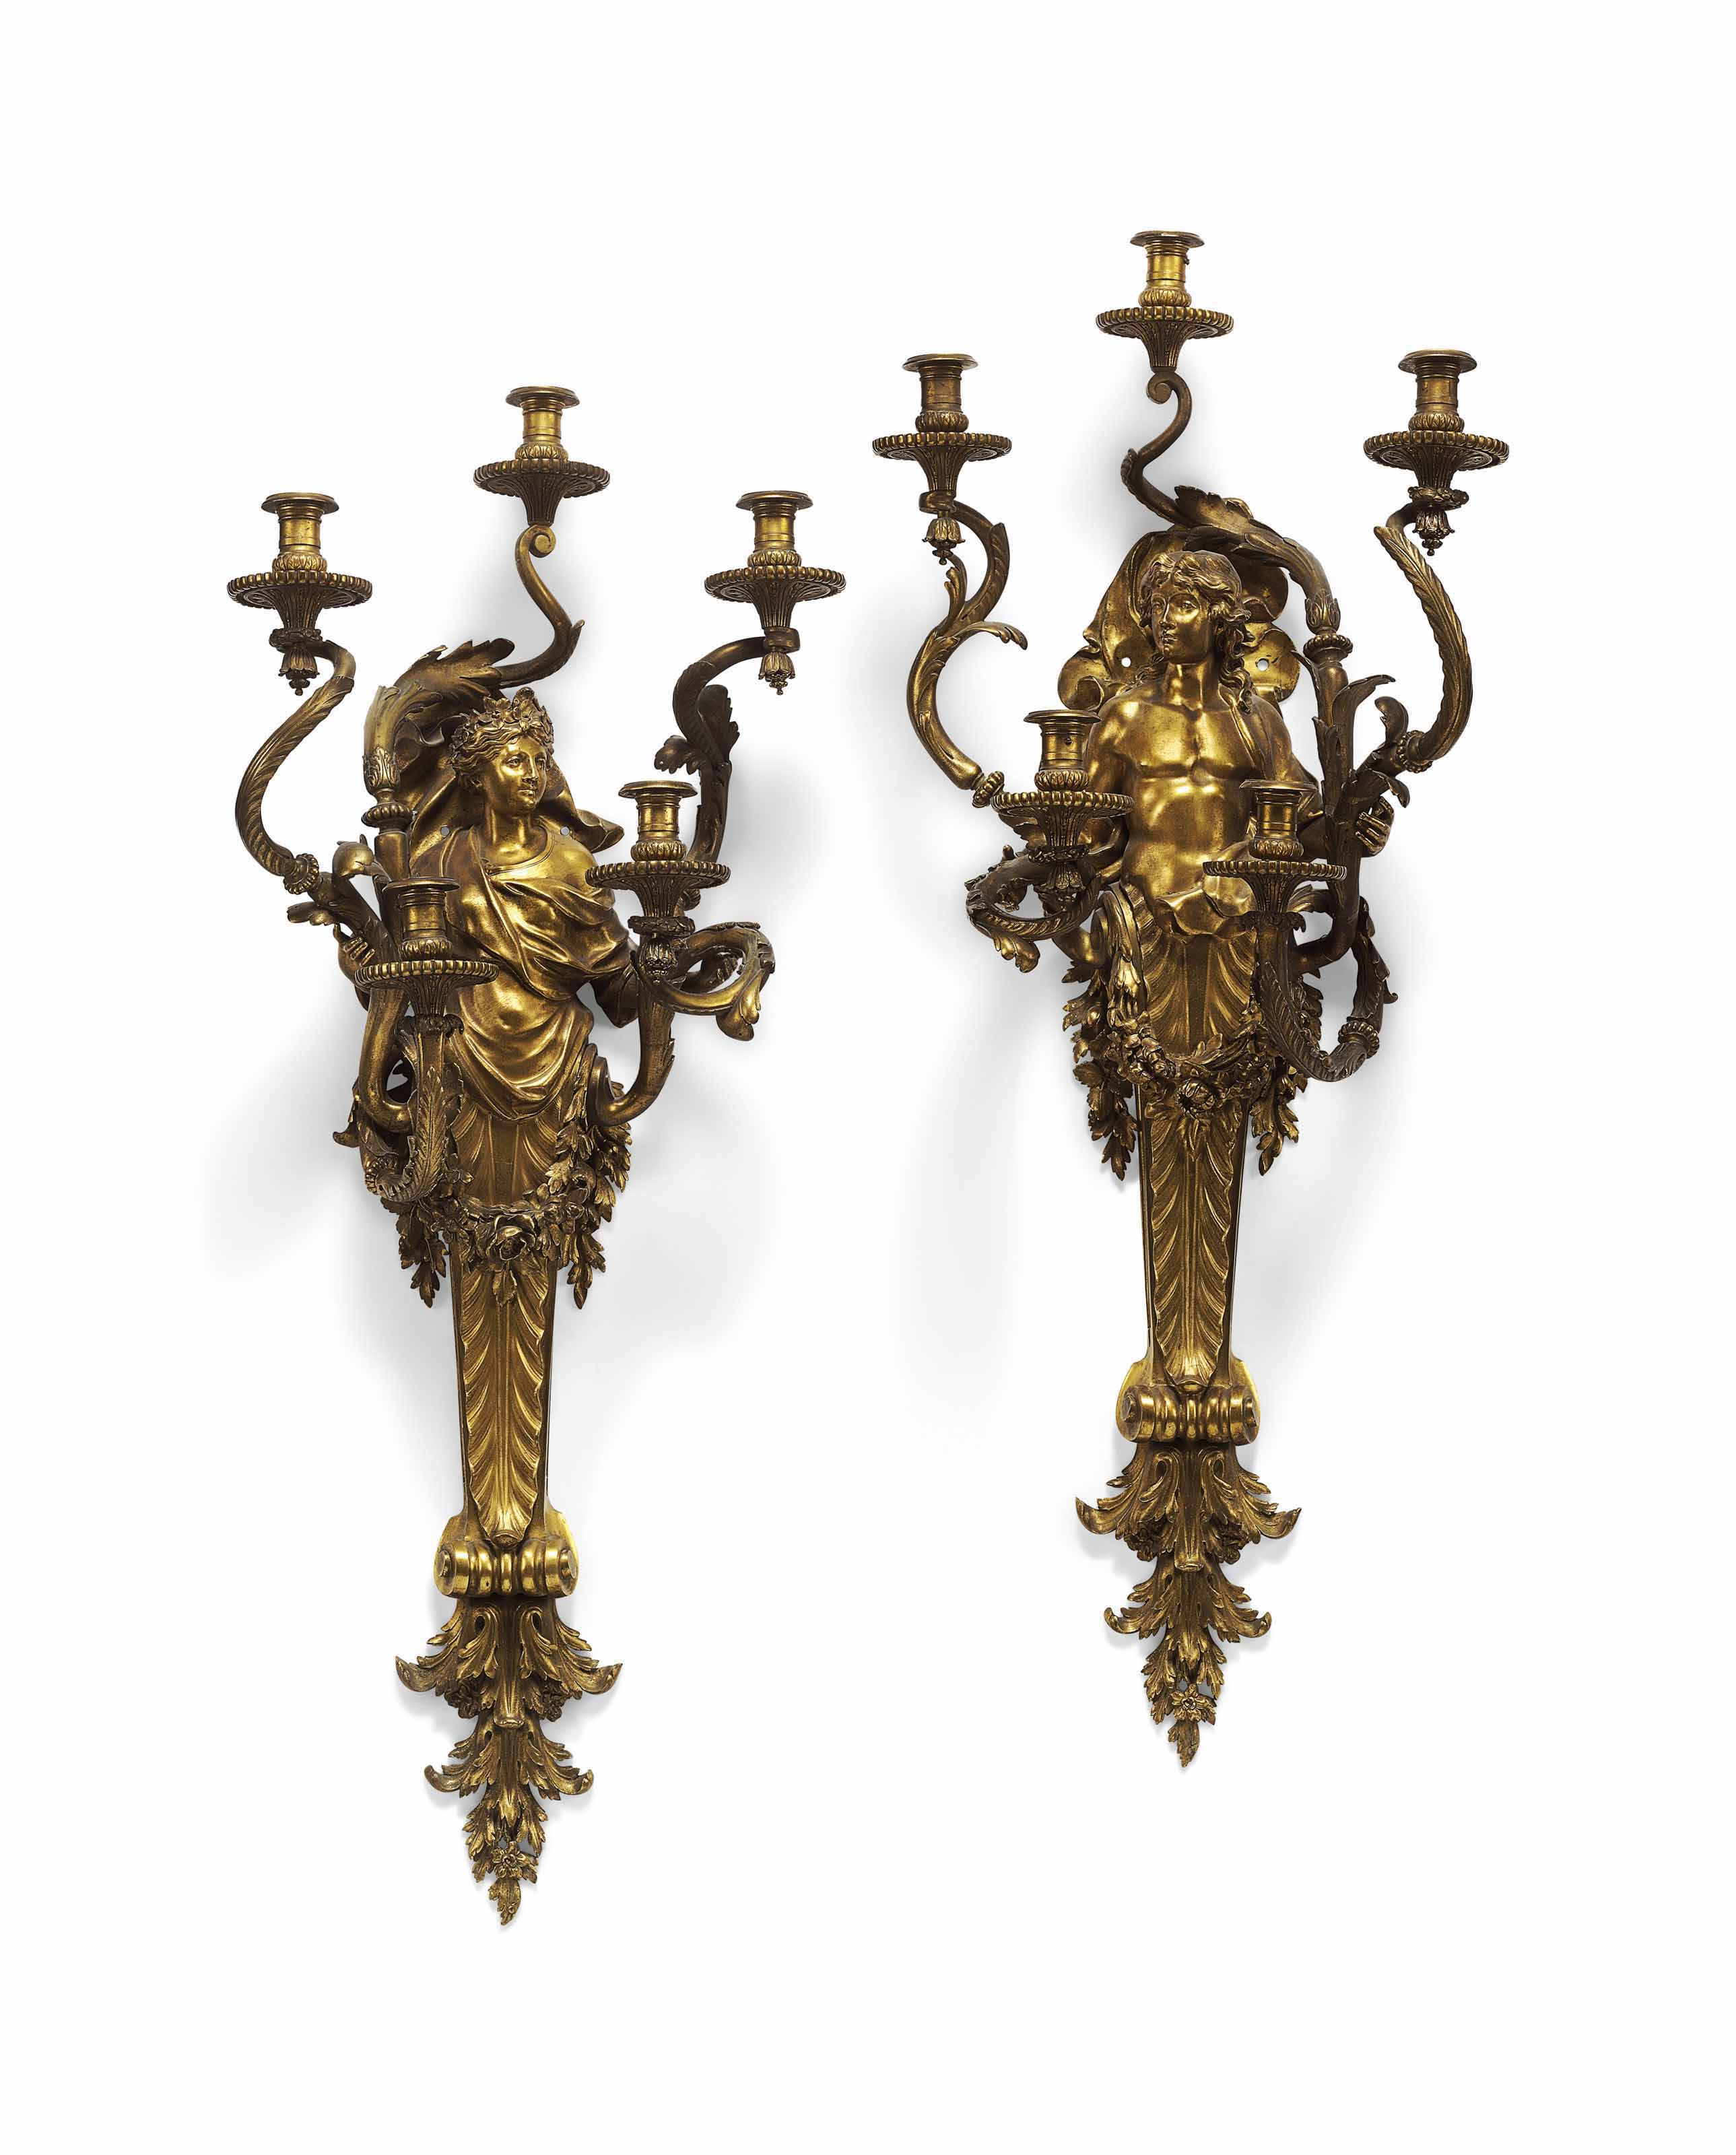 A PAIR OF FRENCH ORMOLU FIVE-LIGHT WALL APPLIQUES